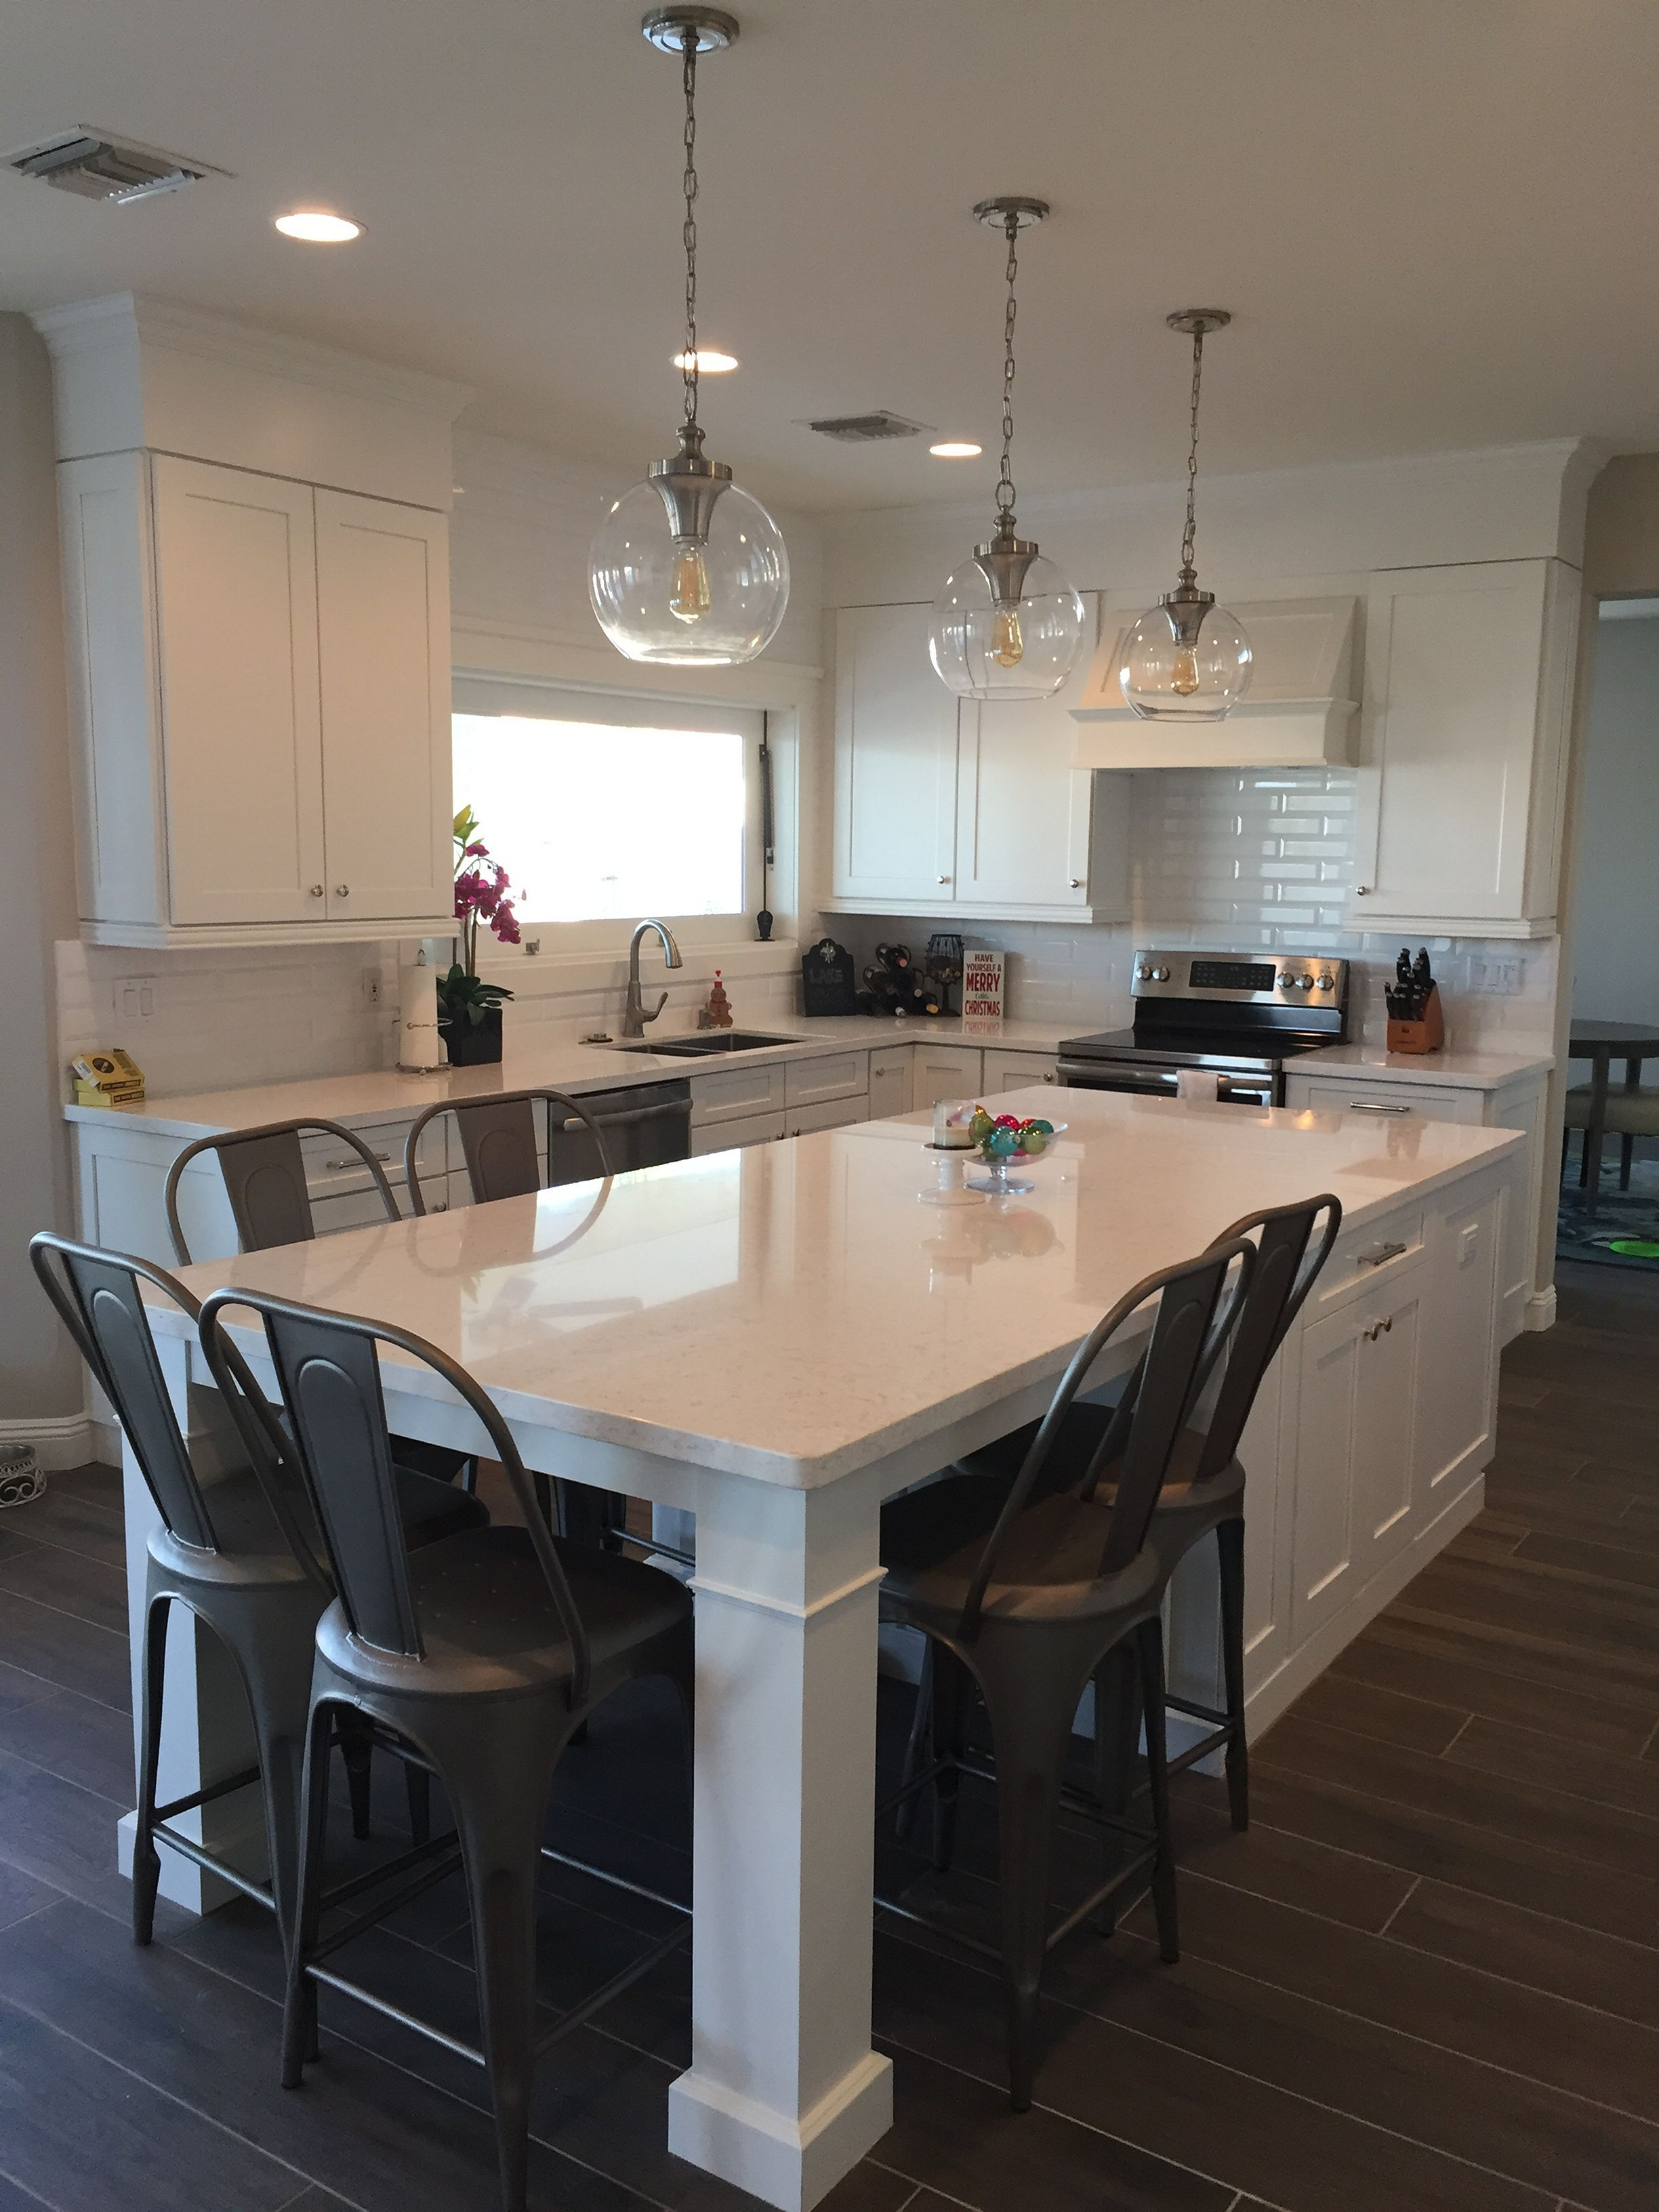 5 Kitchen Island Styles For Your Home Modern Kitchen Island Design Kitchen Remodel Small Modern Kitchen Island